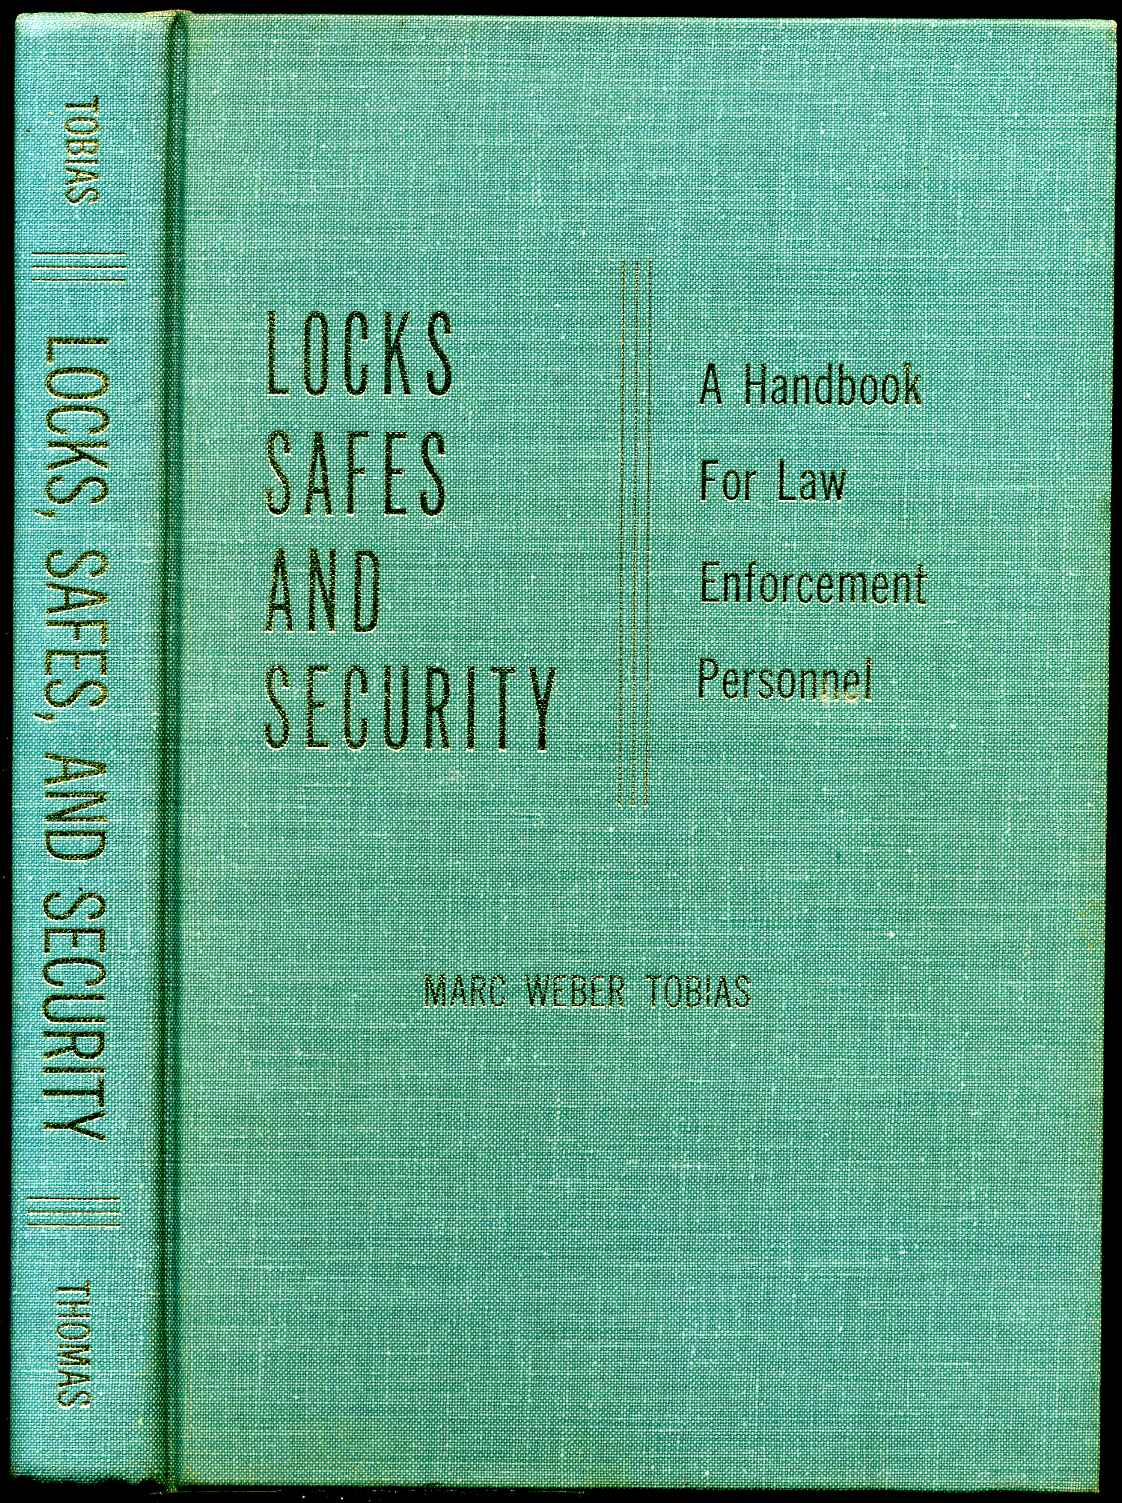 LOCKS, SAFES, AND SECURITY  A Handbook for Law Enforcement Personnel by  Marc Weber Tobias on Kurt Gippert Bookseller